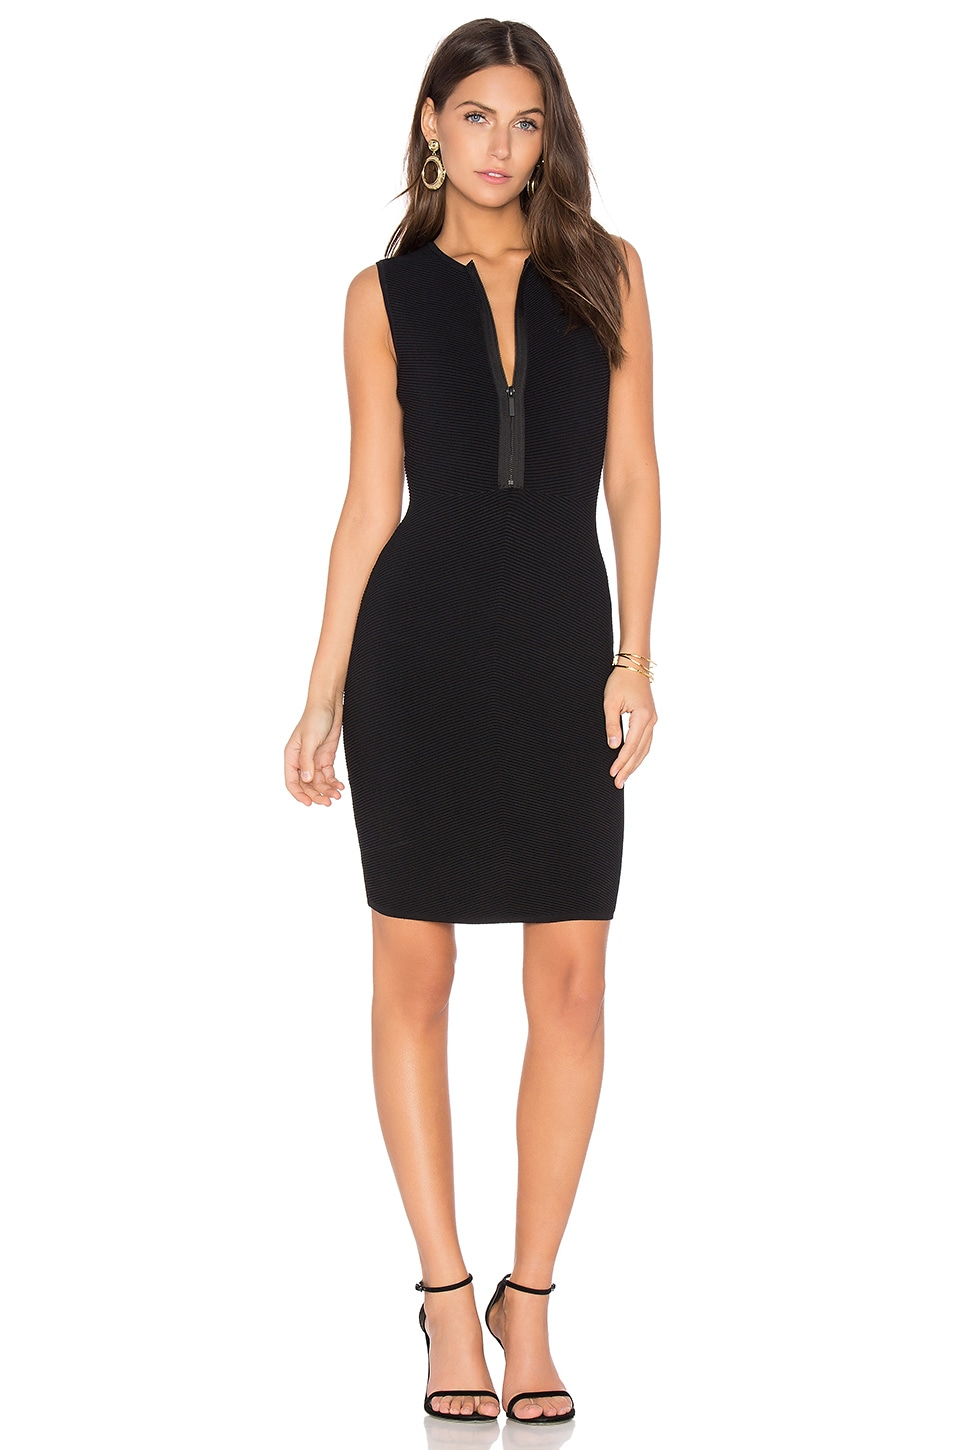 Spencer Dress by John & Jenn by Line